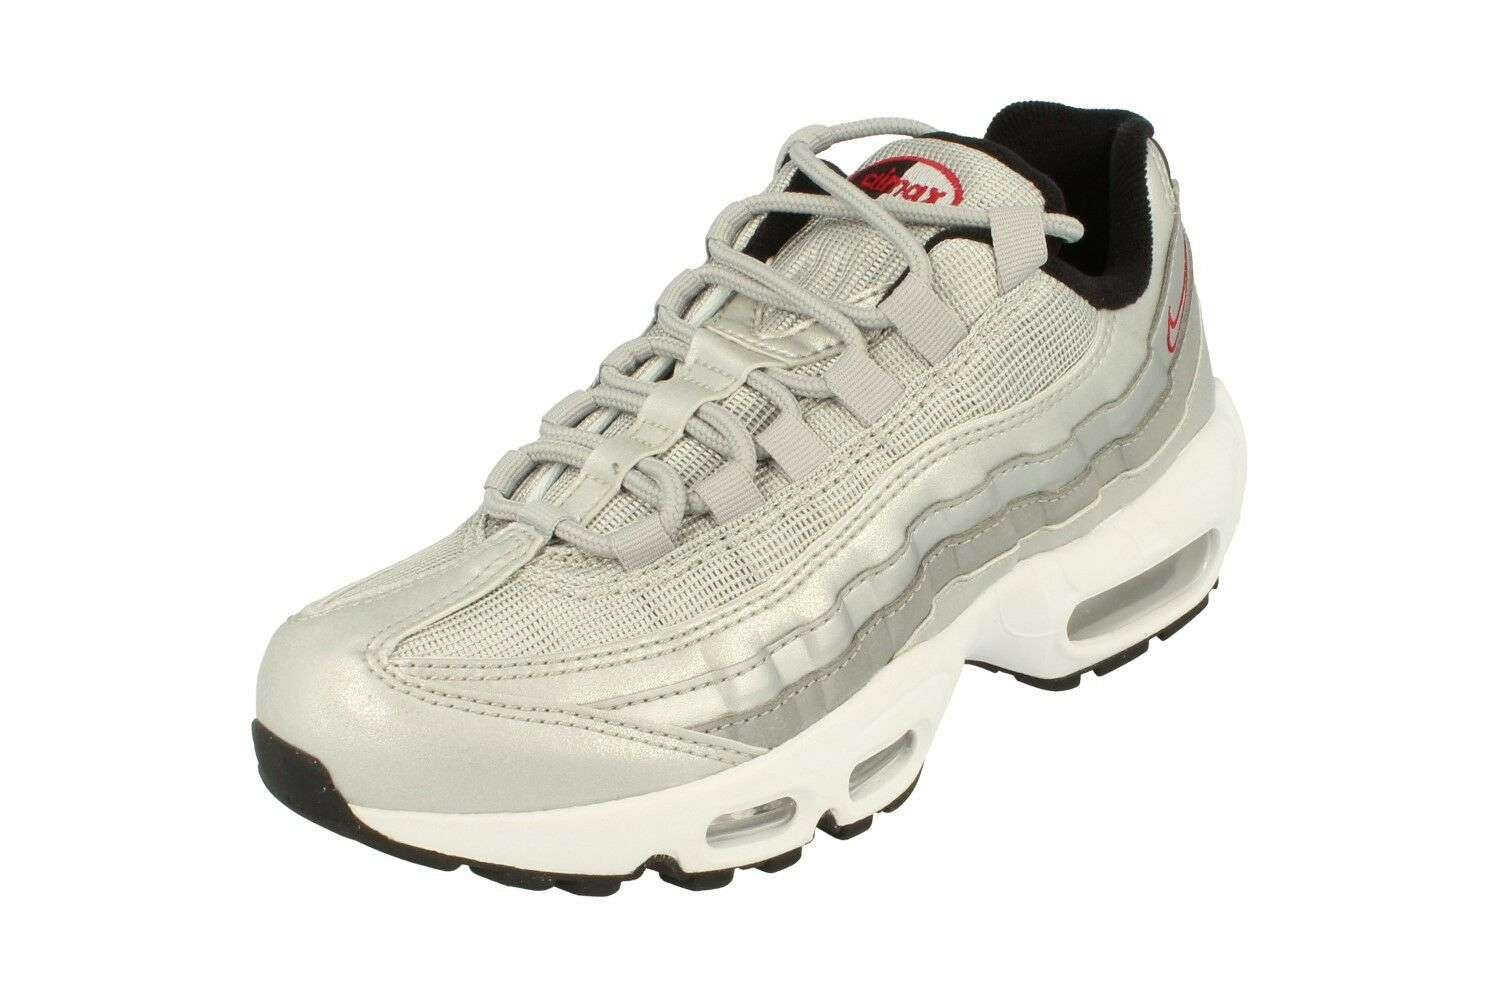 Nike Womens Air Max 95 QS Running Trainers 814914 002 Sneakers shoes